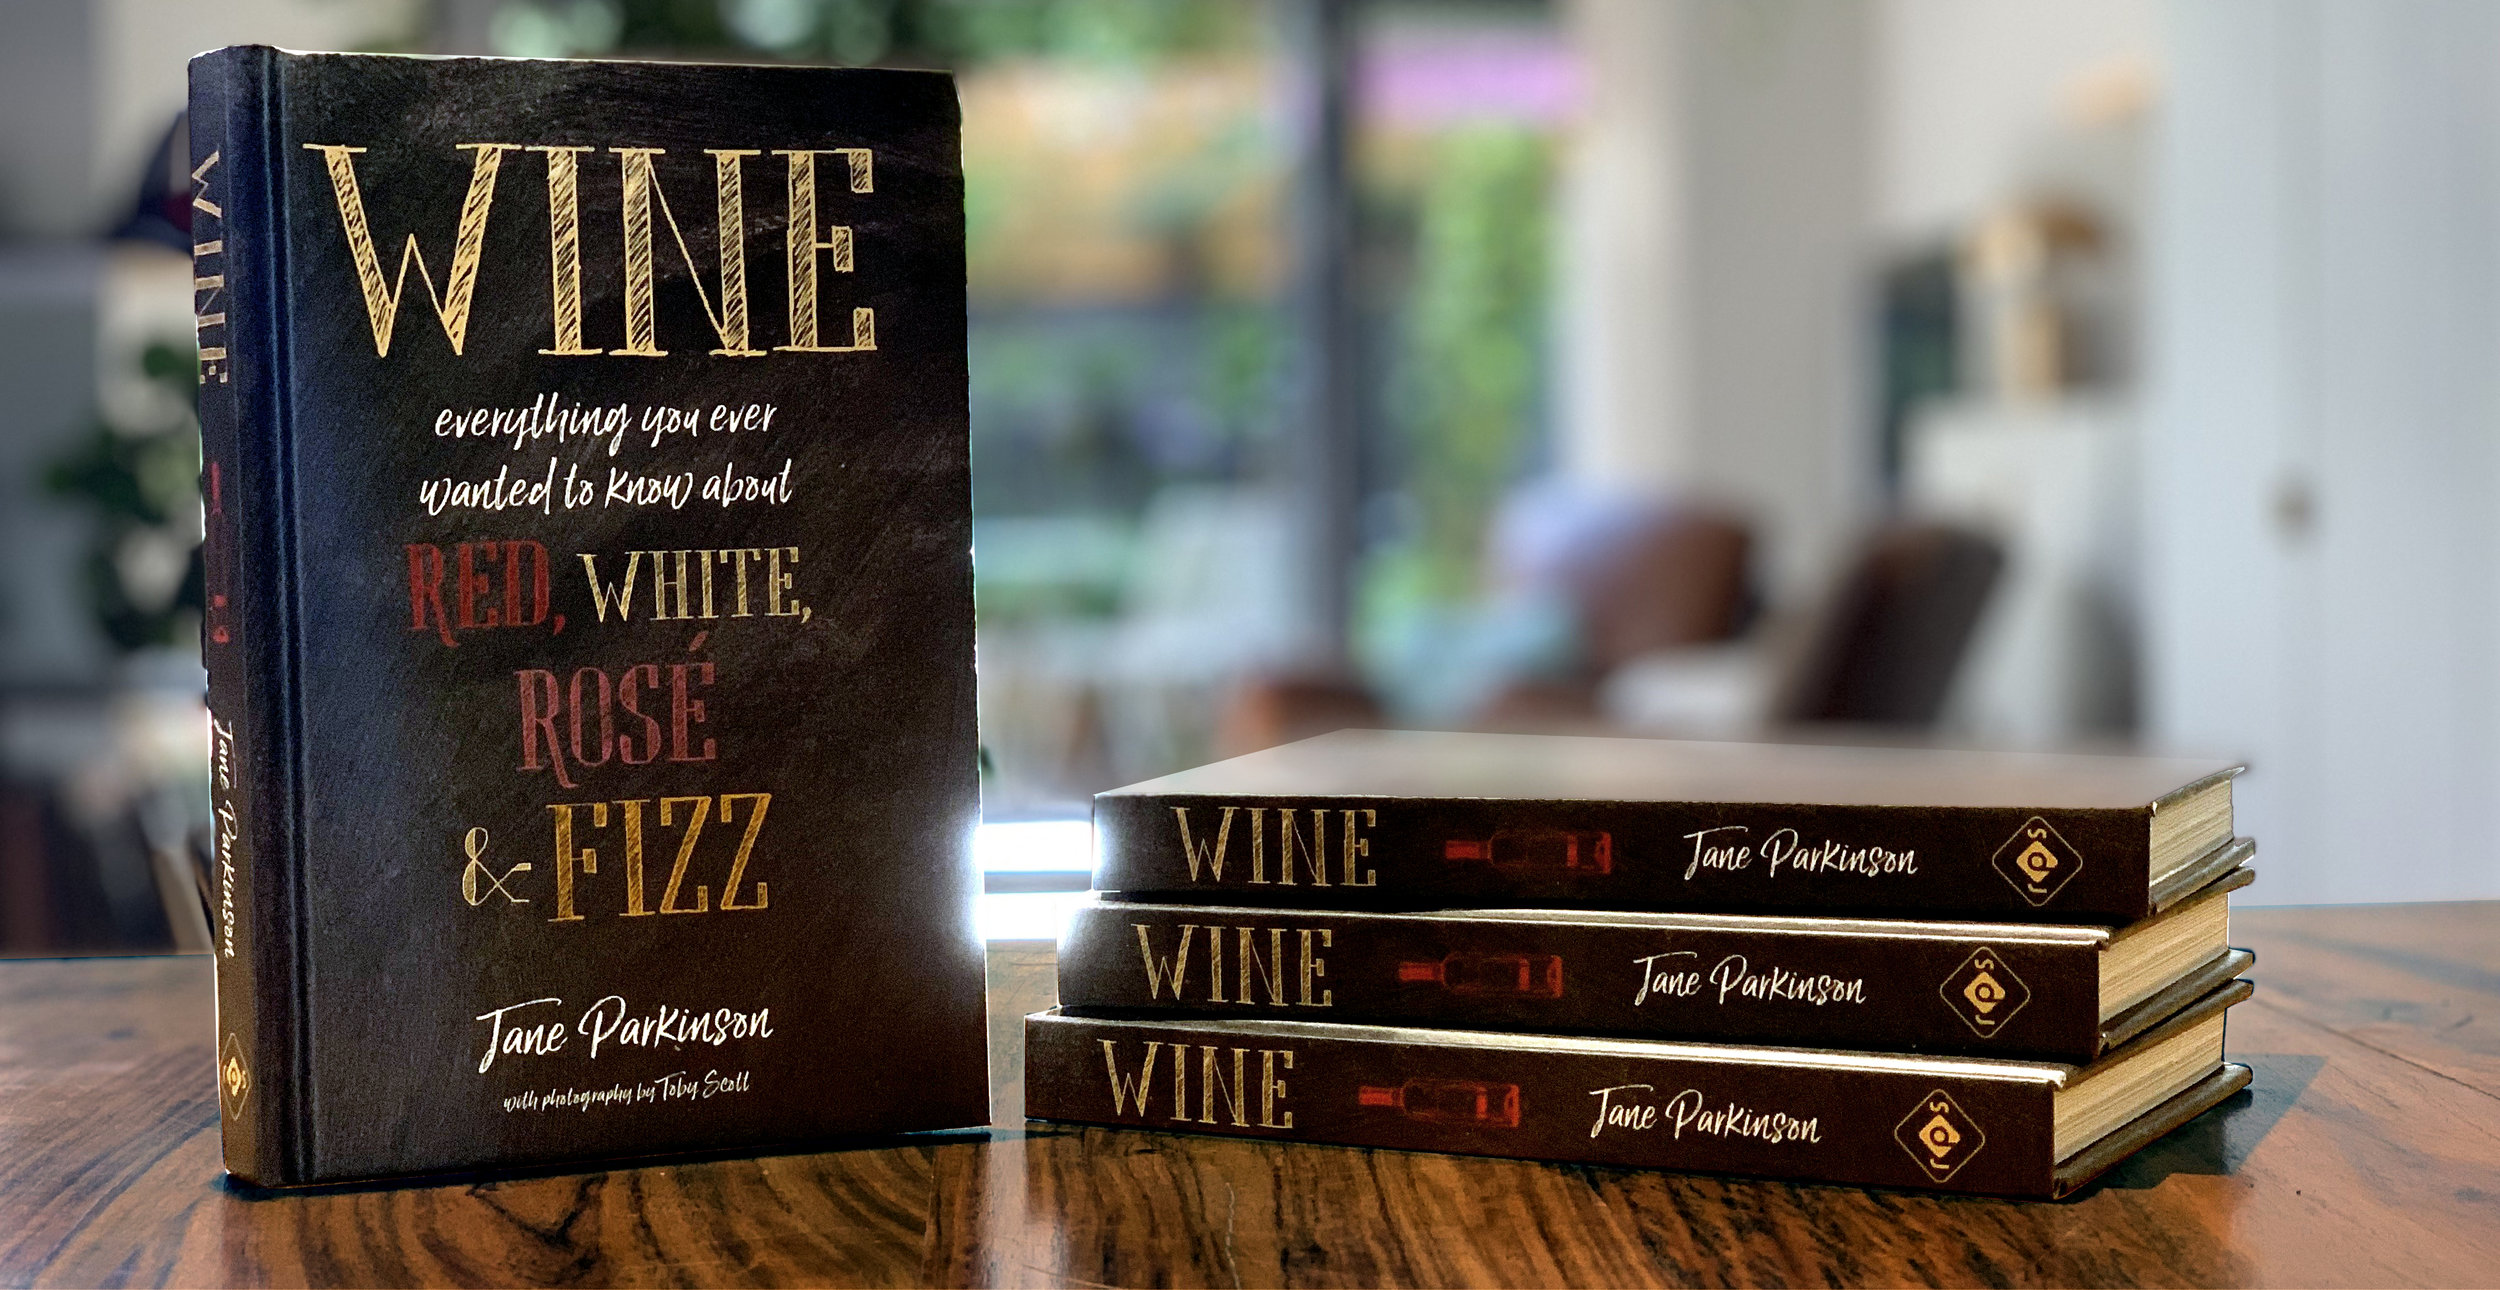 'Wine' Released March 2019 - This is Jane's second book with international publisher Ryland Peters & Small.